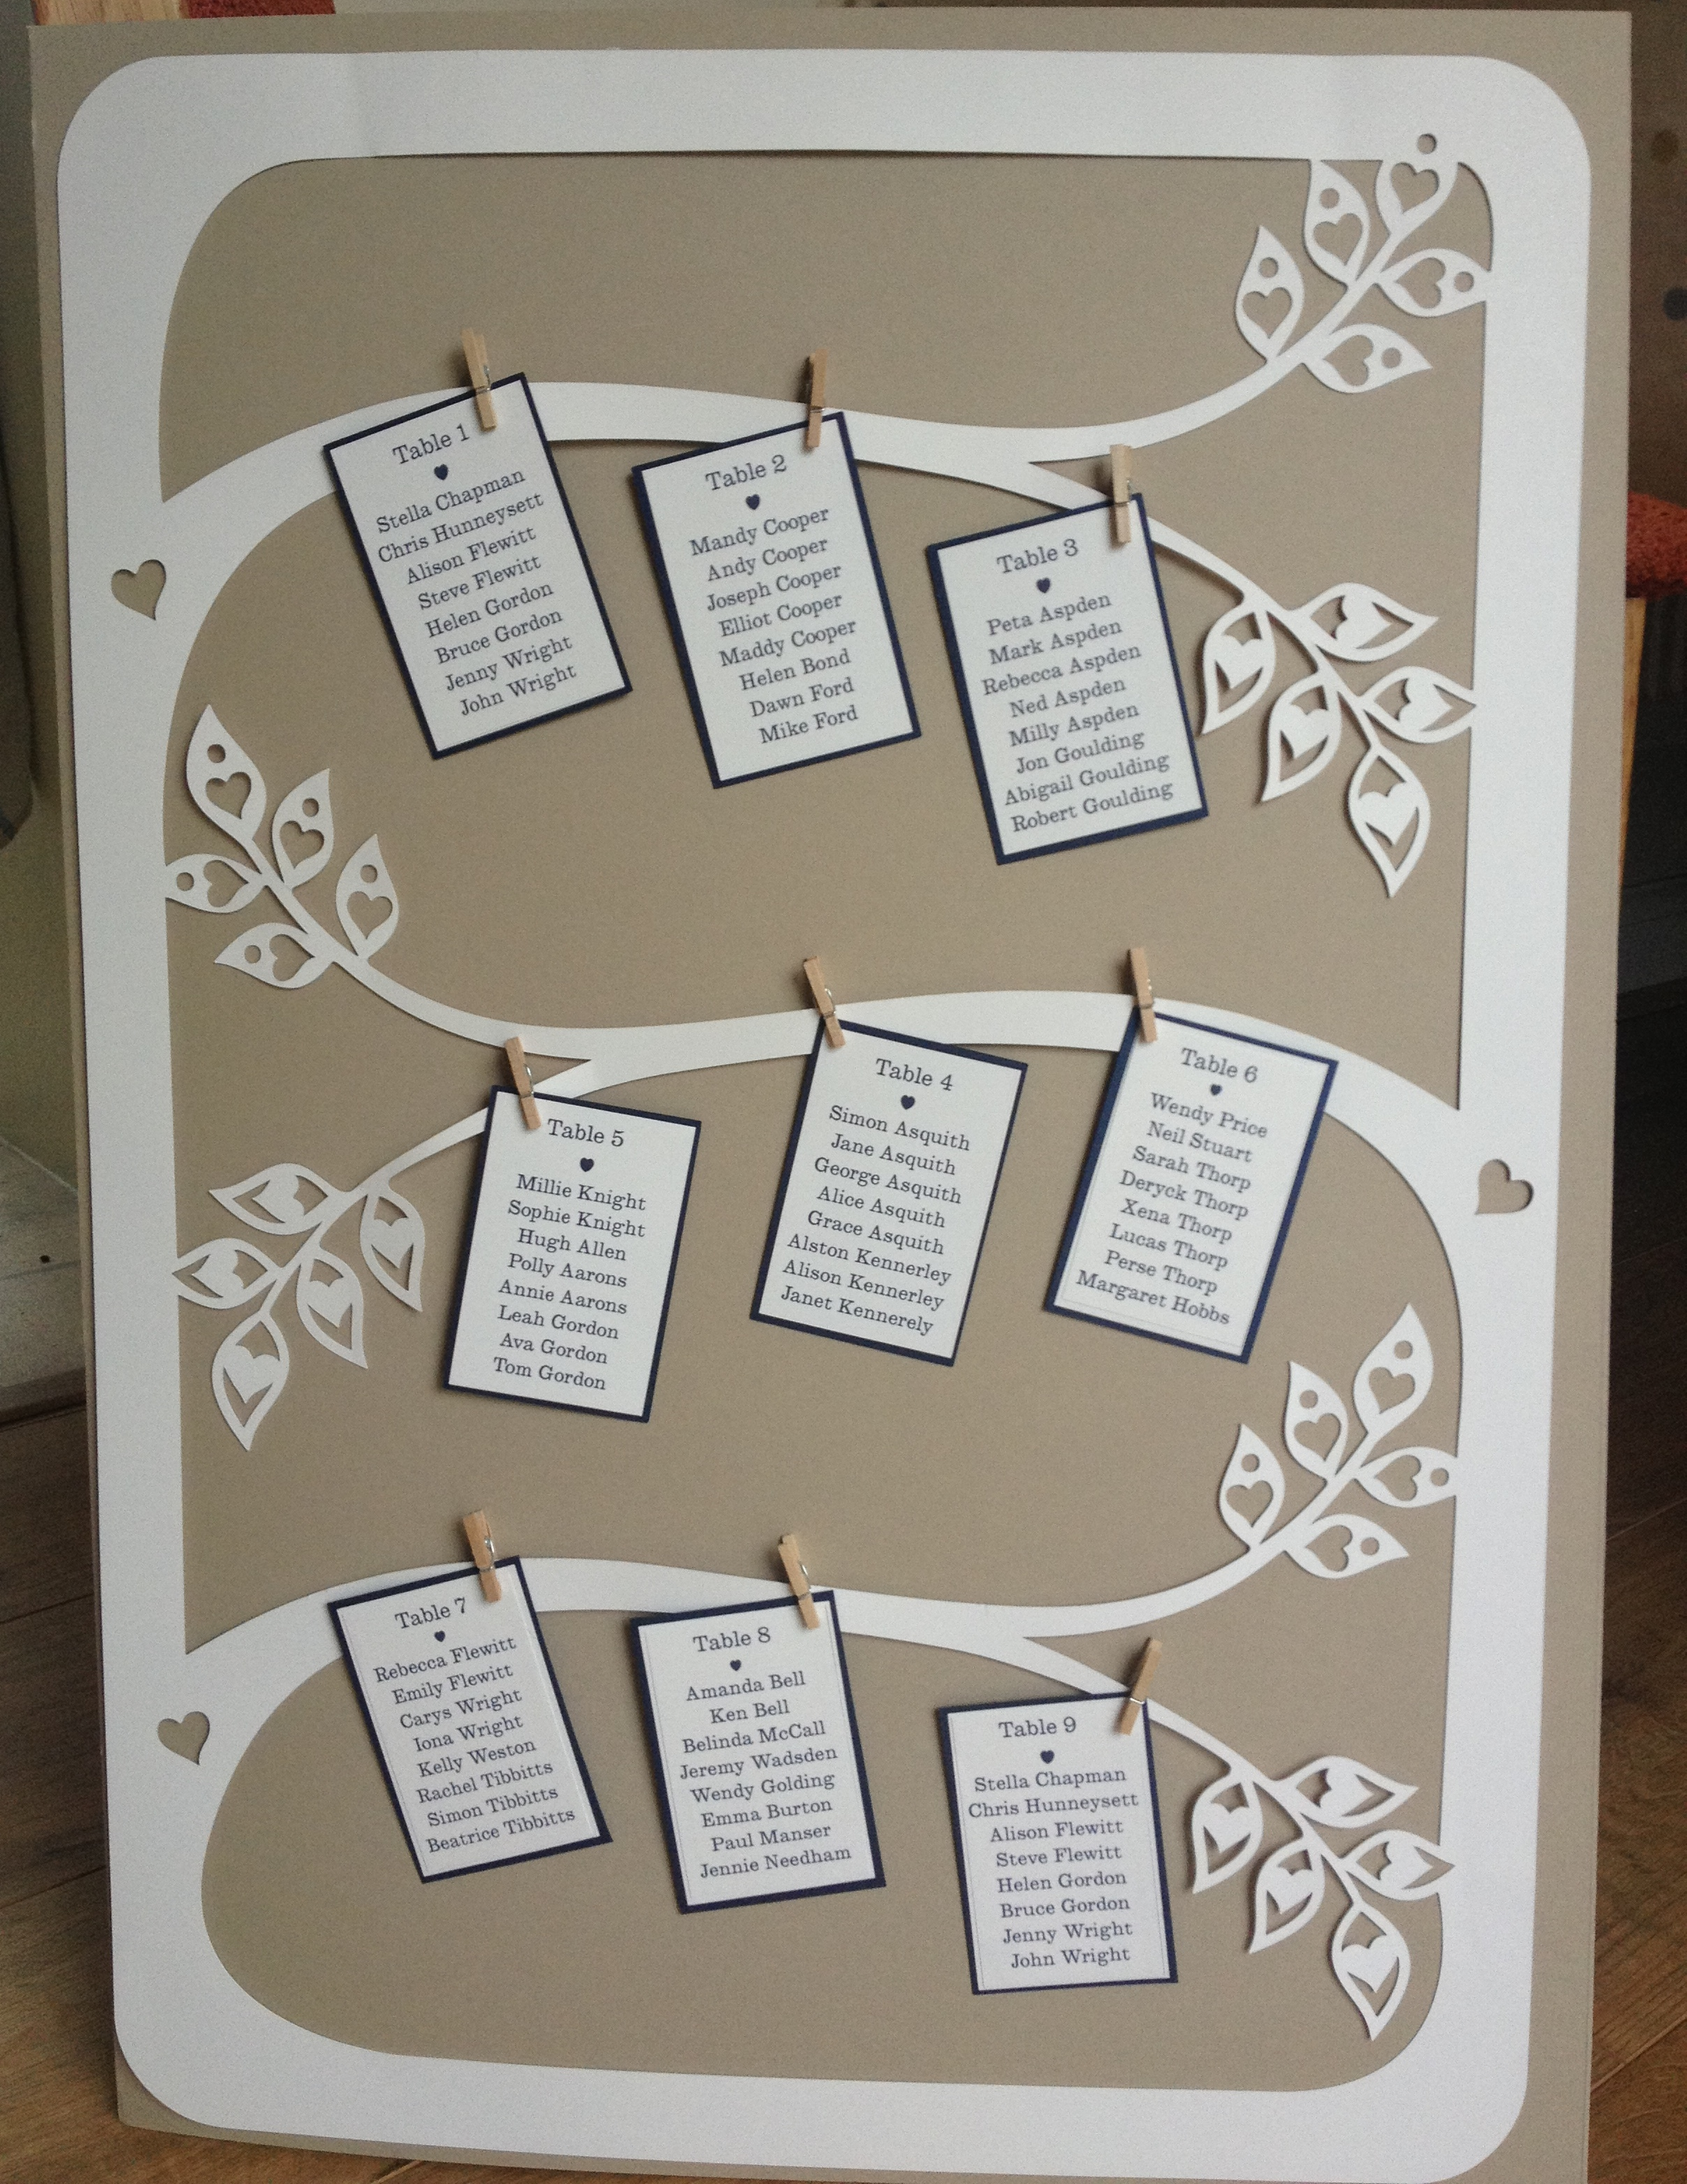 Great  flexible table plan,  by pegging the cards on  there is scope to add or remove tables easily